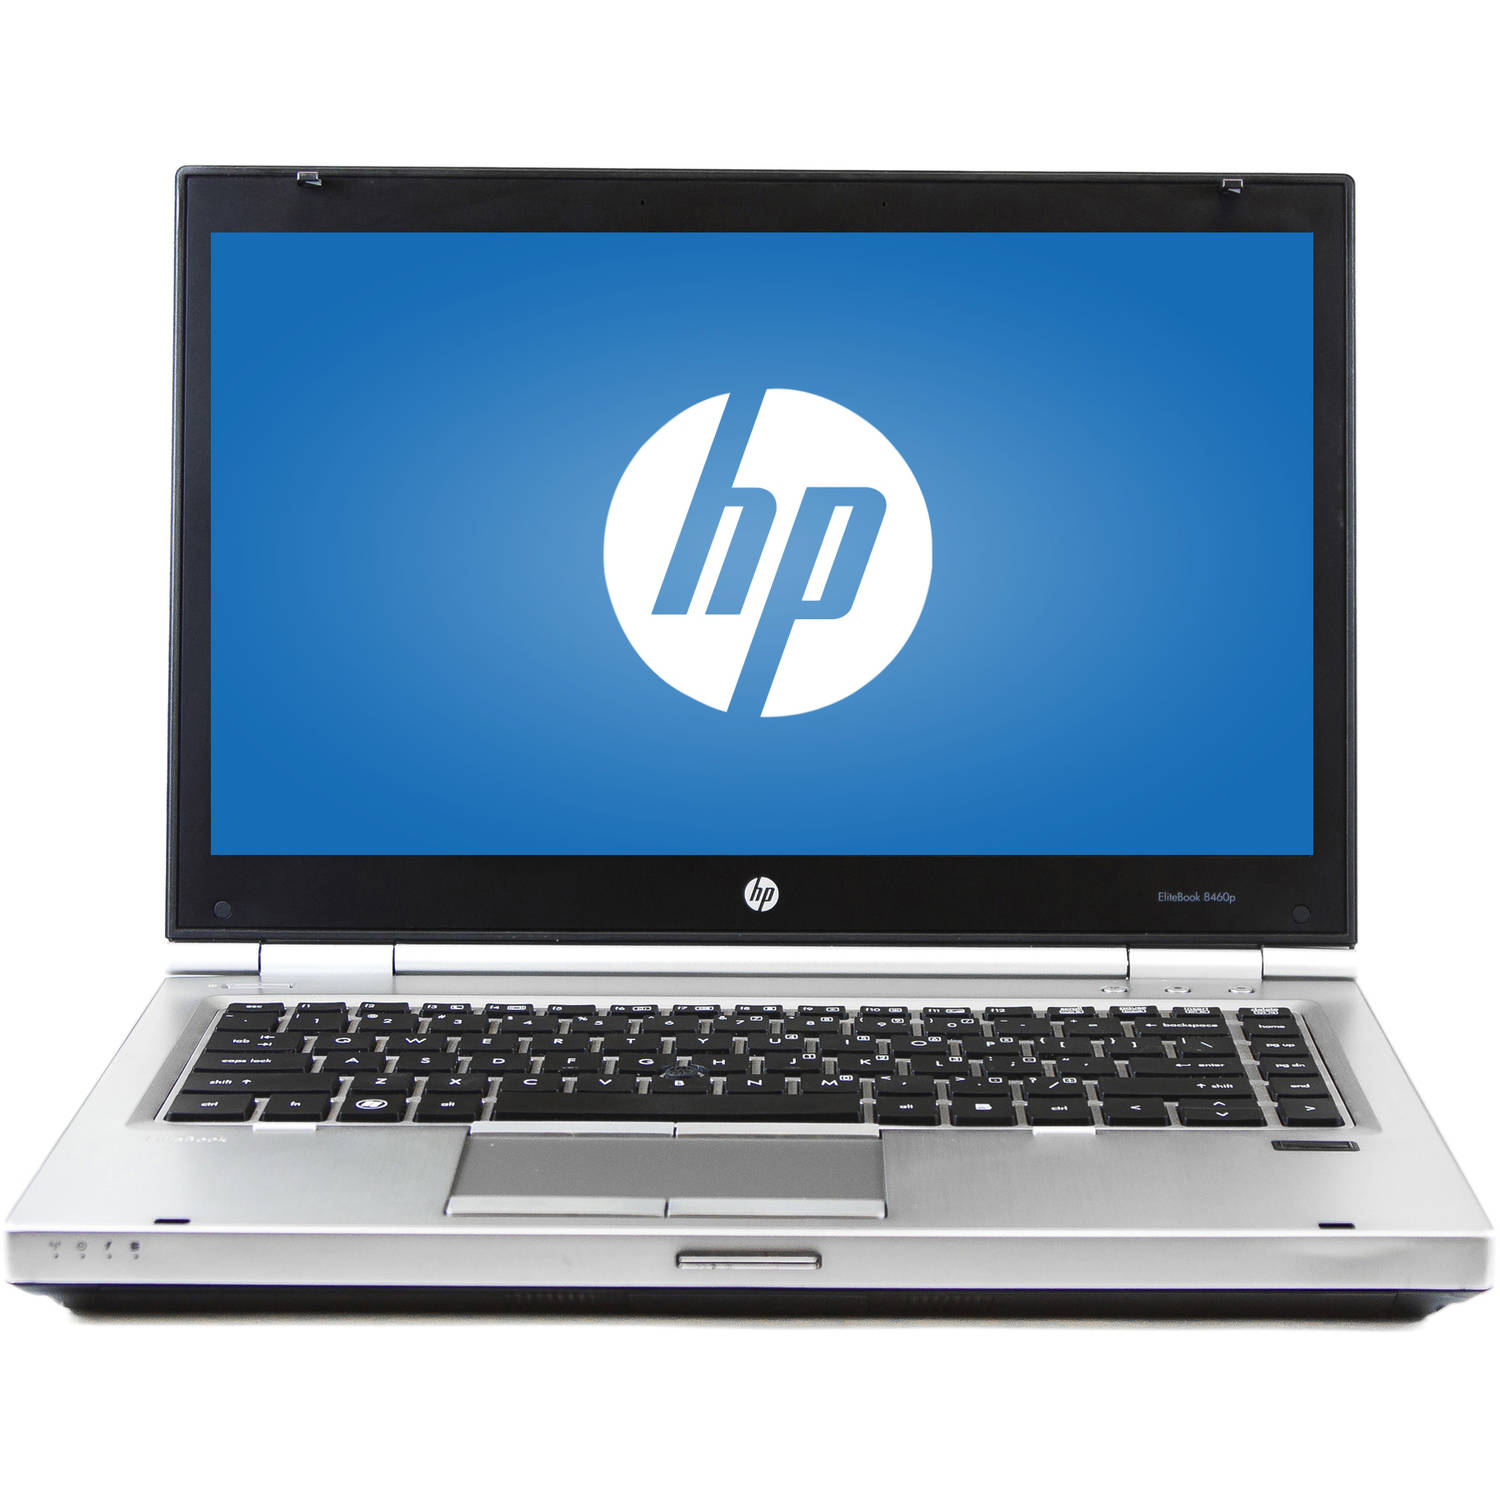 Refurbished HP 14 EliteBook 8460P Laptop PC with Intel Core i5 - 2520M Processor, 8GB Memory, 750GB Hard Drive and Windows 10 Pro